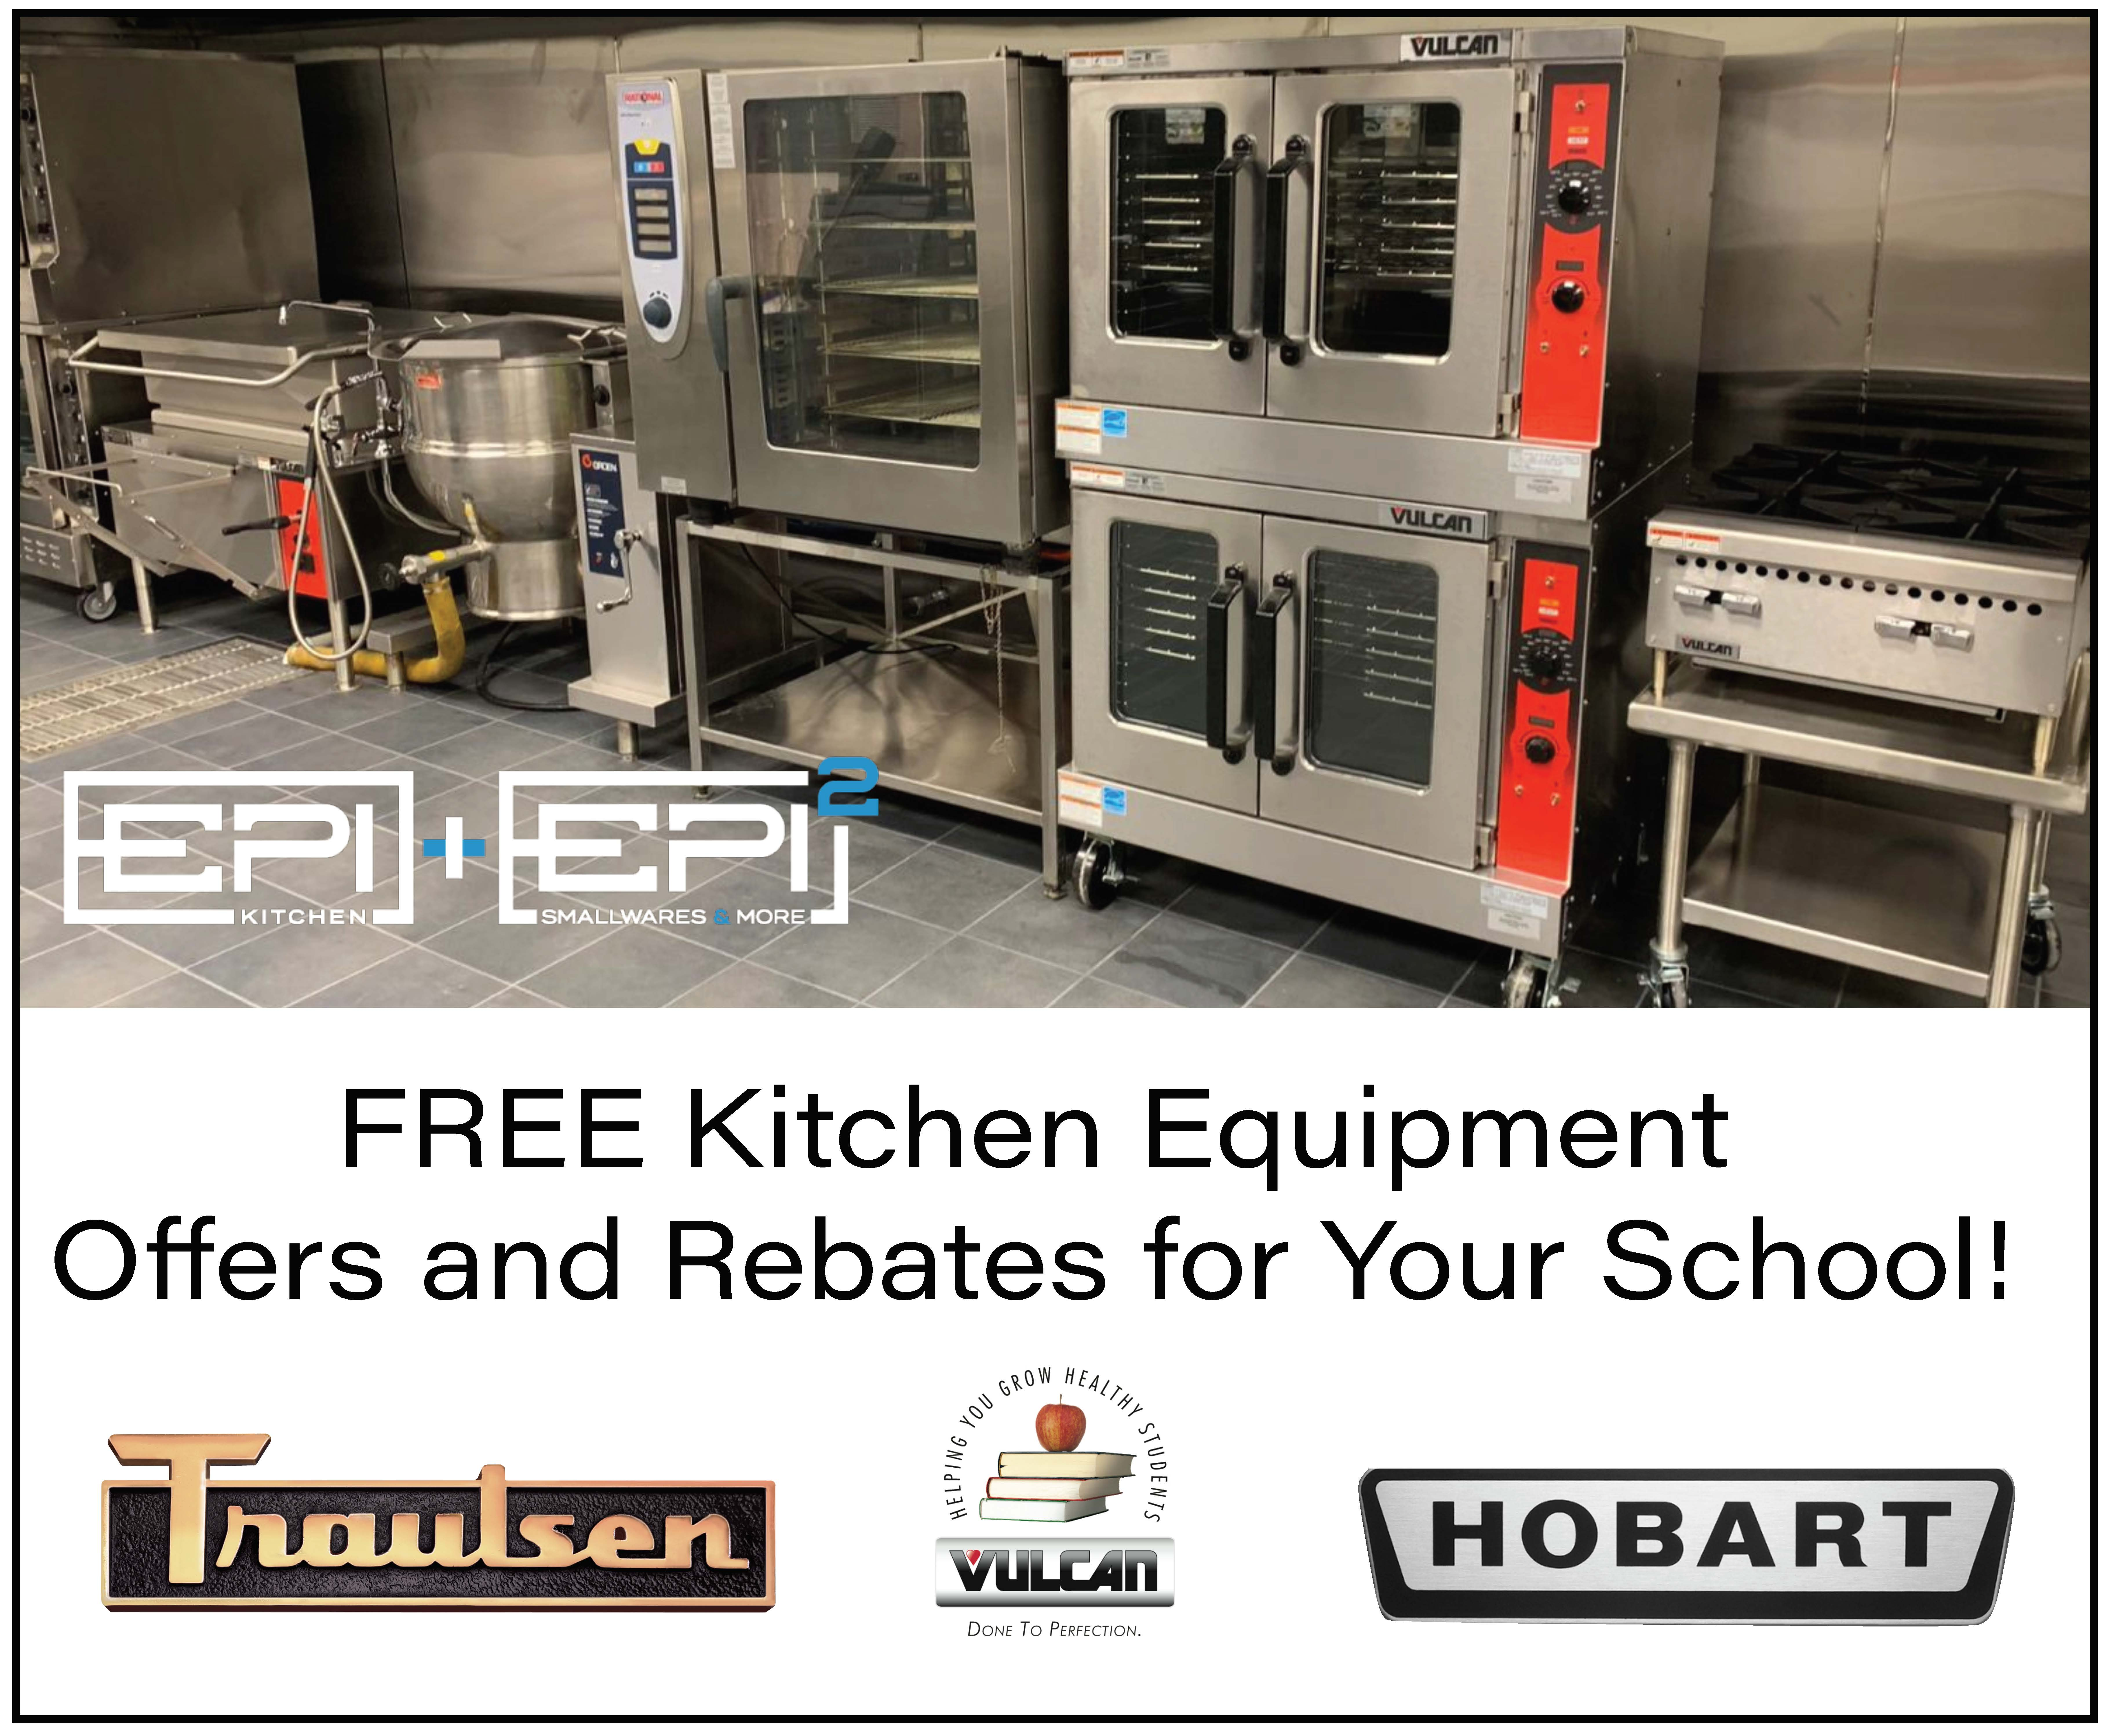 FREE KITCHEN EQUIPMENT OFFERS AND REBATES